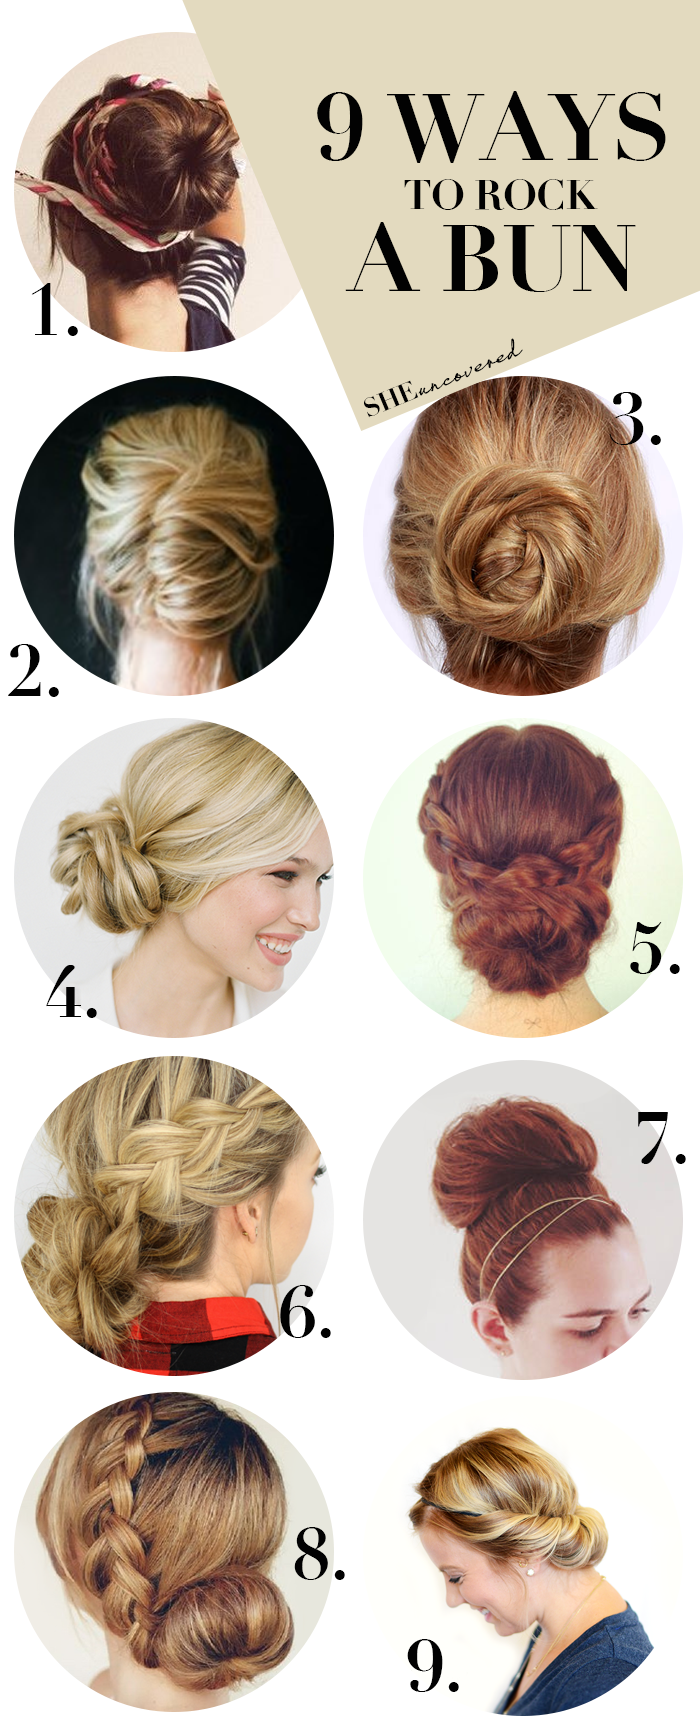 From the yoga studio to everyday life the bun is the easiest